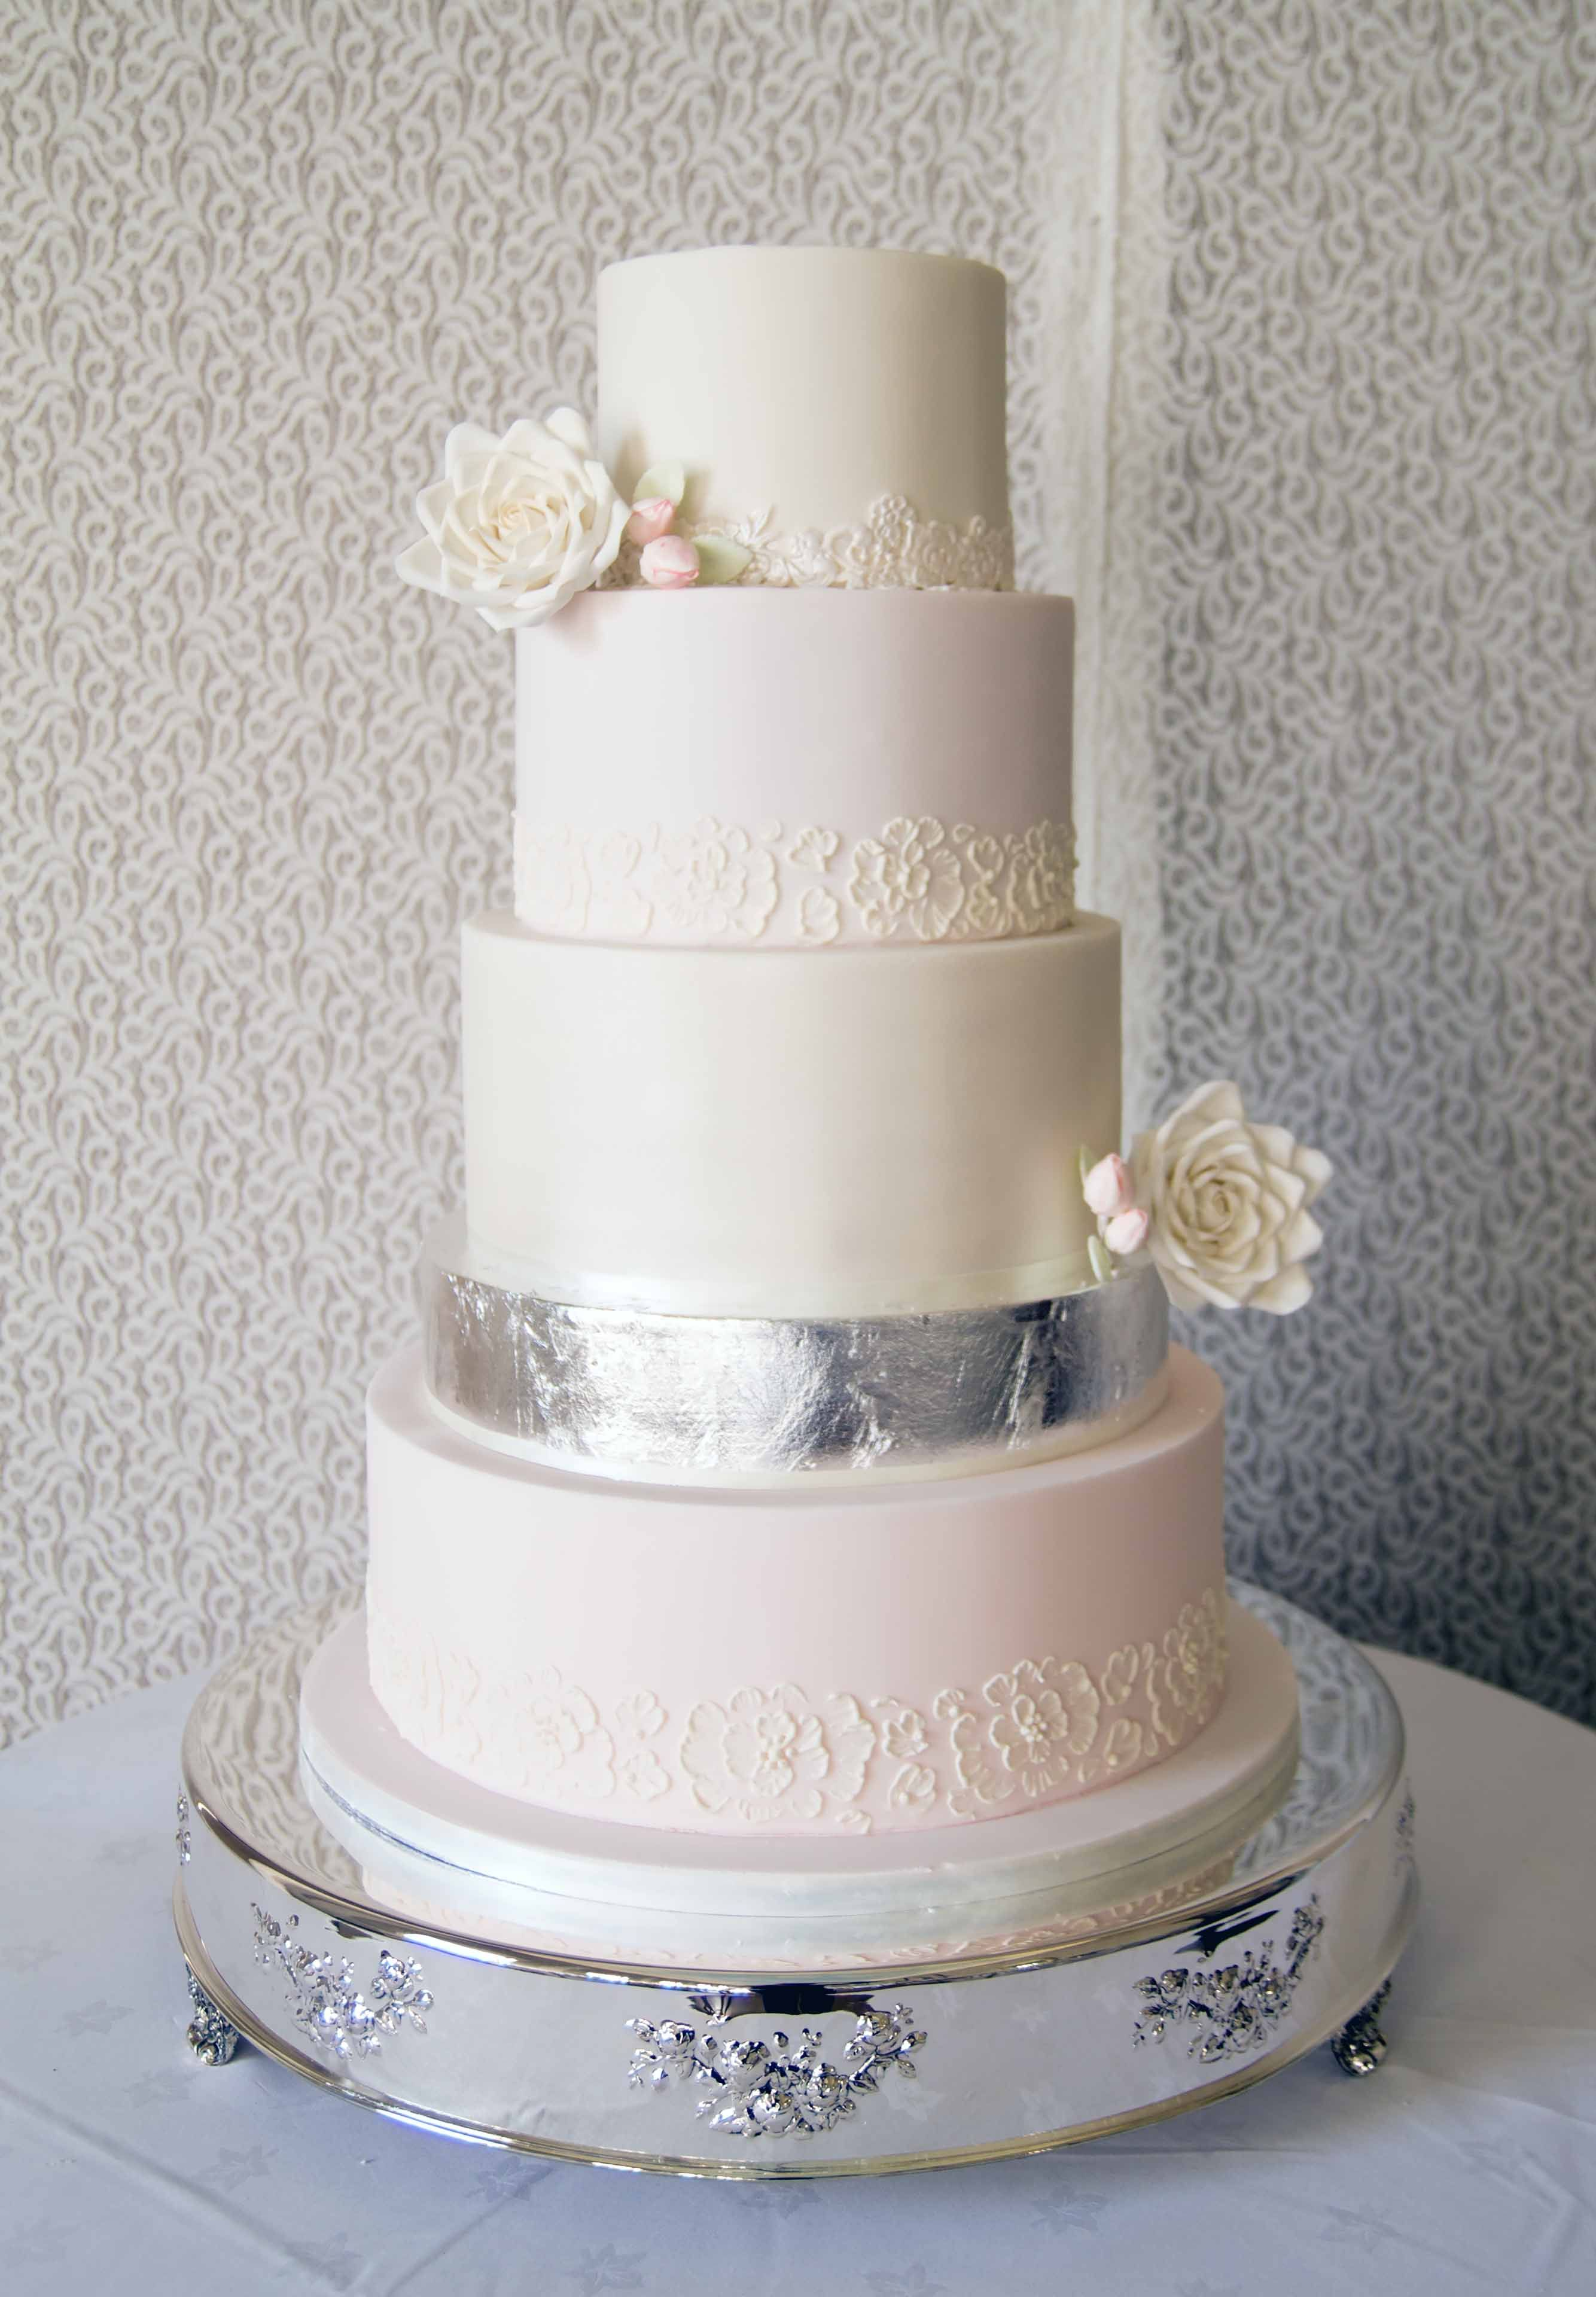 Pin by Tiers of Joy on REAL CAKE | Pinterest | Wedding cake ...